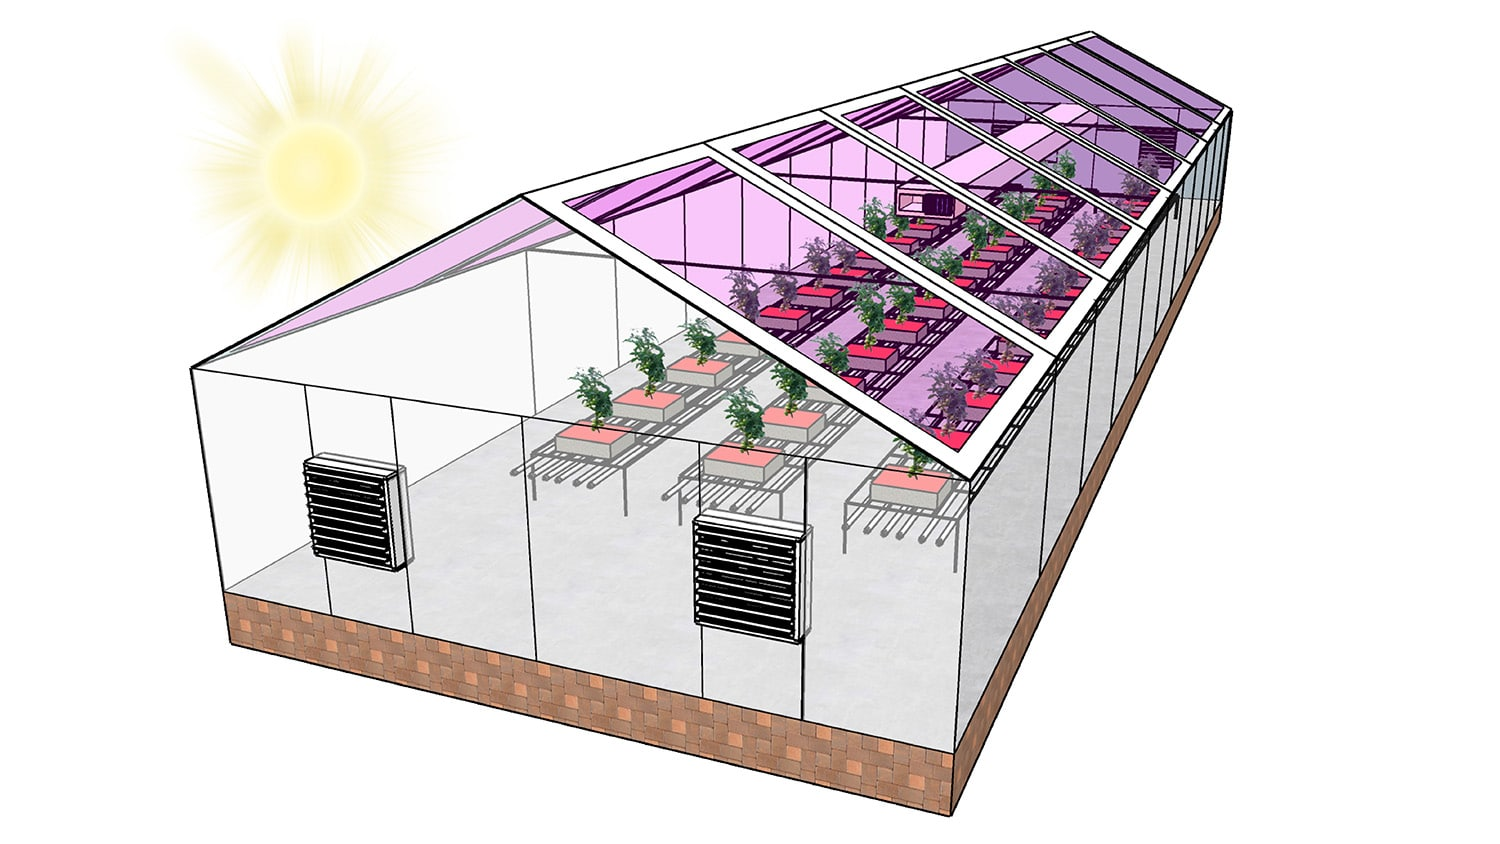 Next Generation of Greenhouses May Be Fully Solar Powered